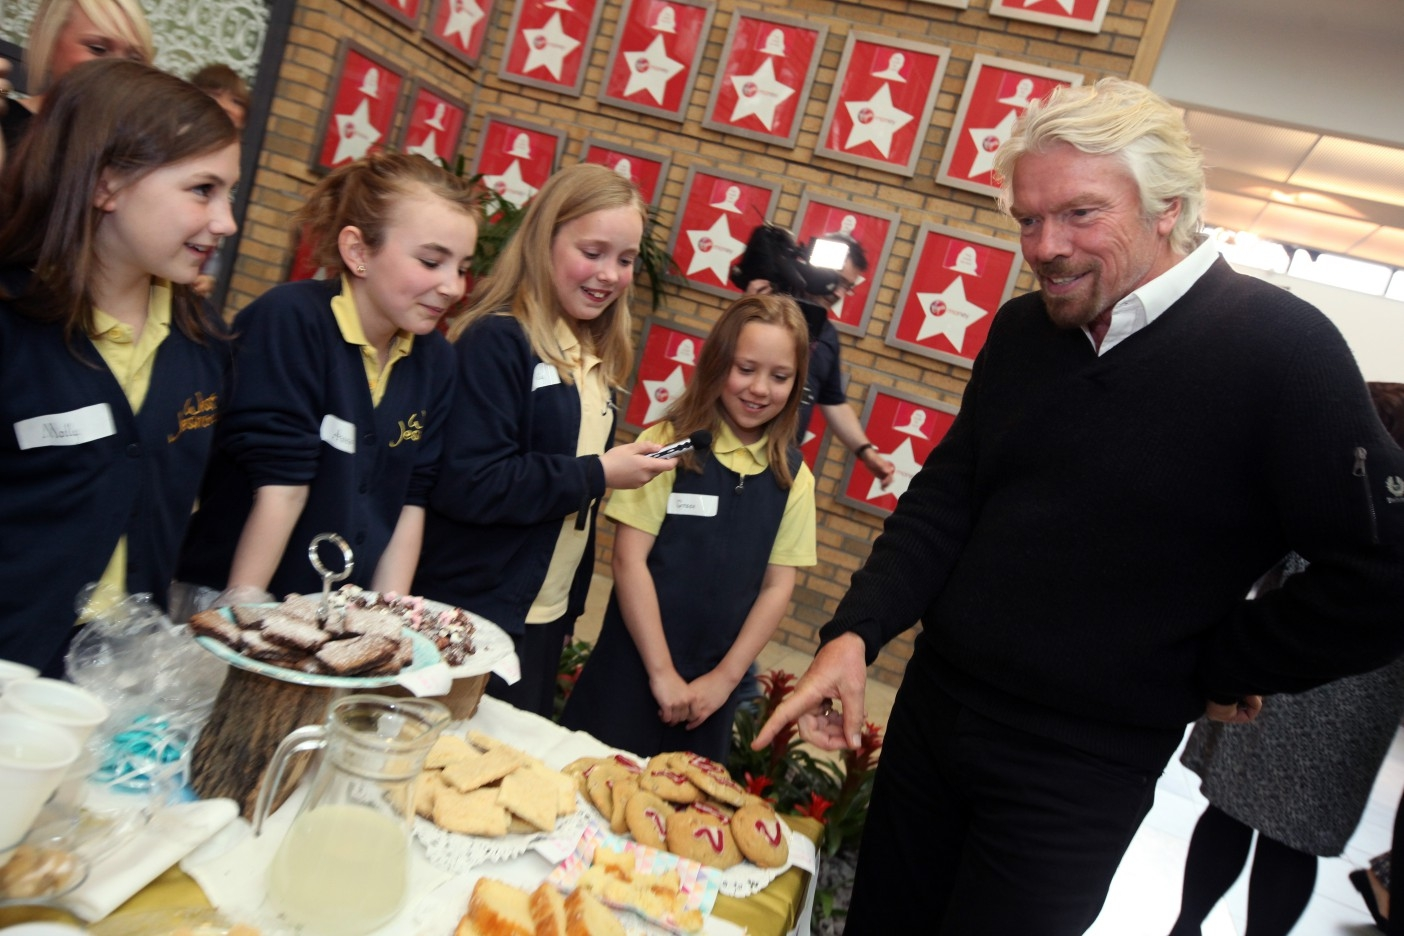 Sir Richard Branson meets pupils from West Jesmond Primary School in Newcastle taking part in Virgin Money's Fiver Challenge, which gives young entrepreneurs a chance to start their own business with a £5 loan. All profits are retained by the school.